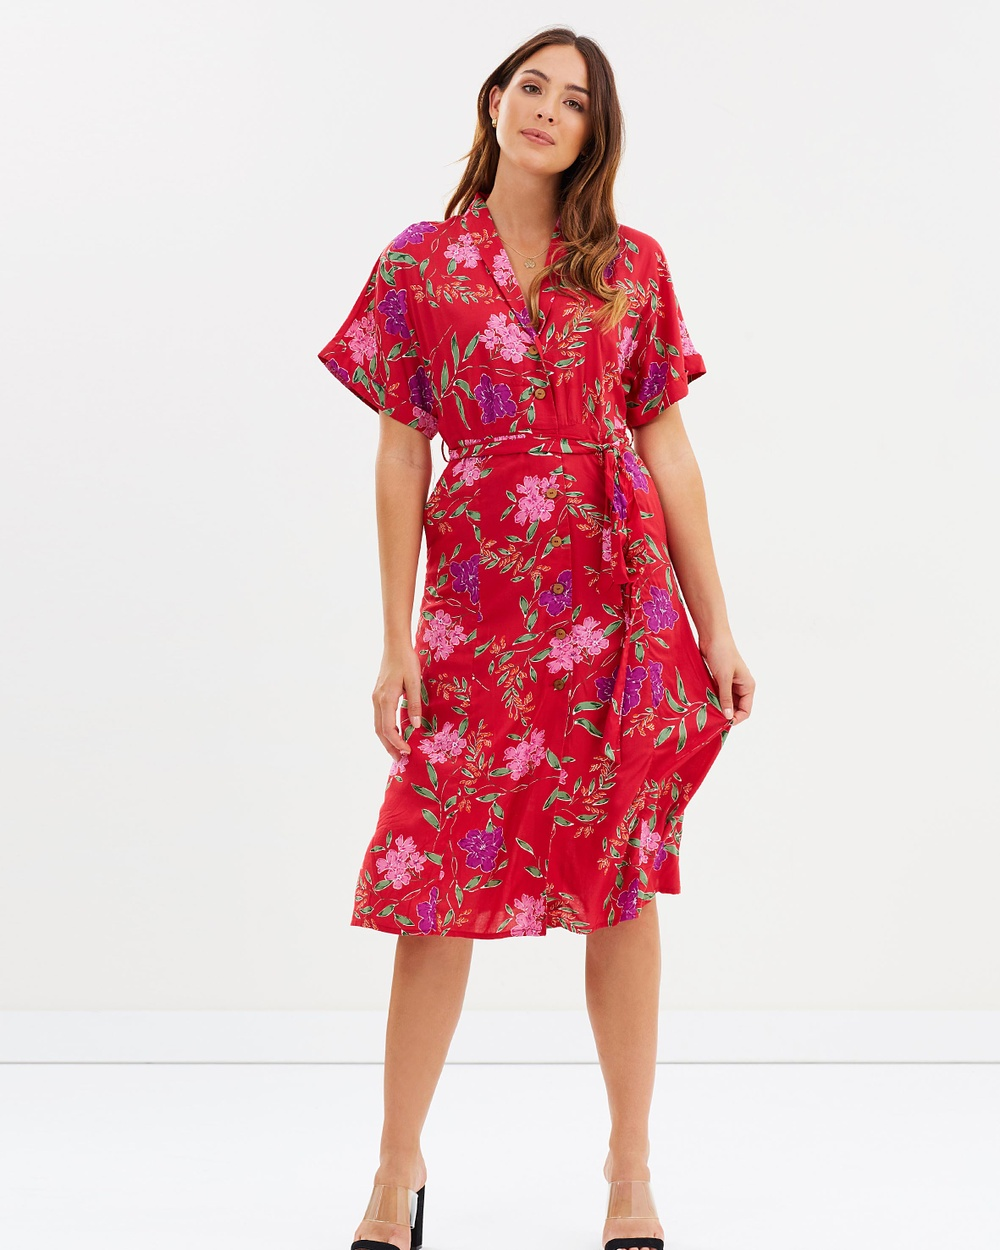 M.N.G Robe Dress Printed Dresses Rojo Robe Dress